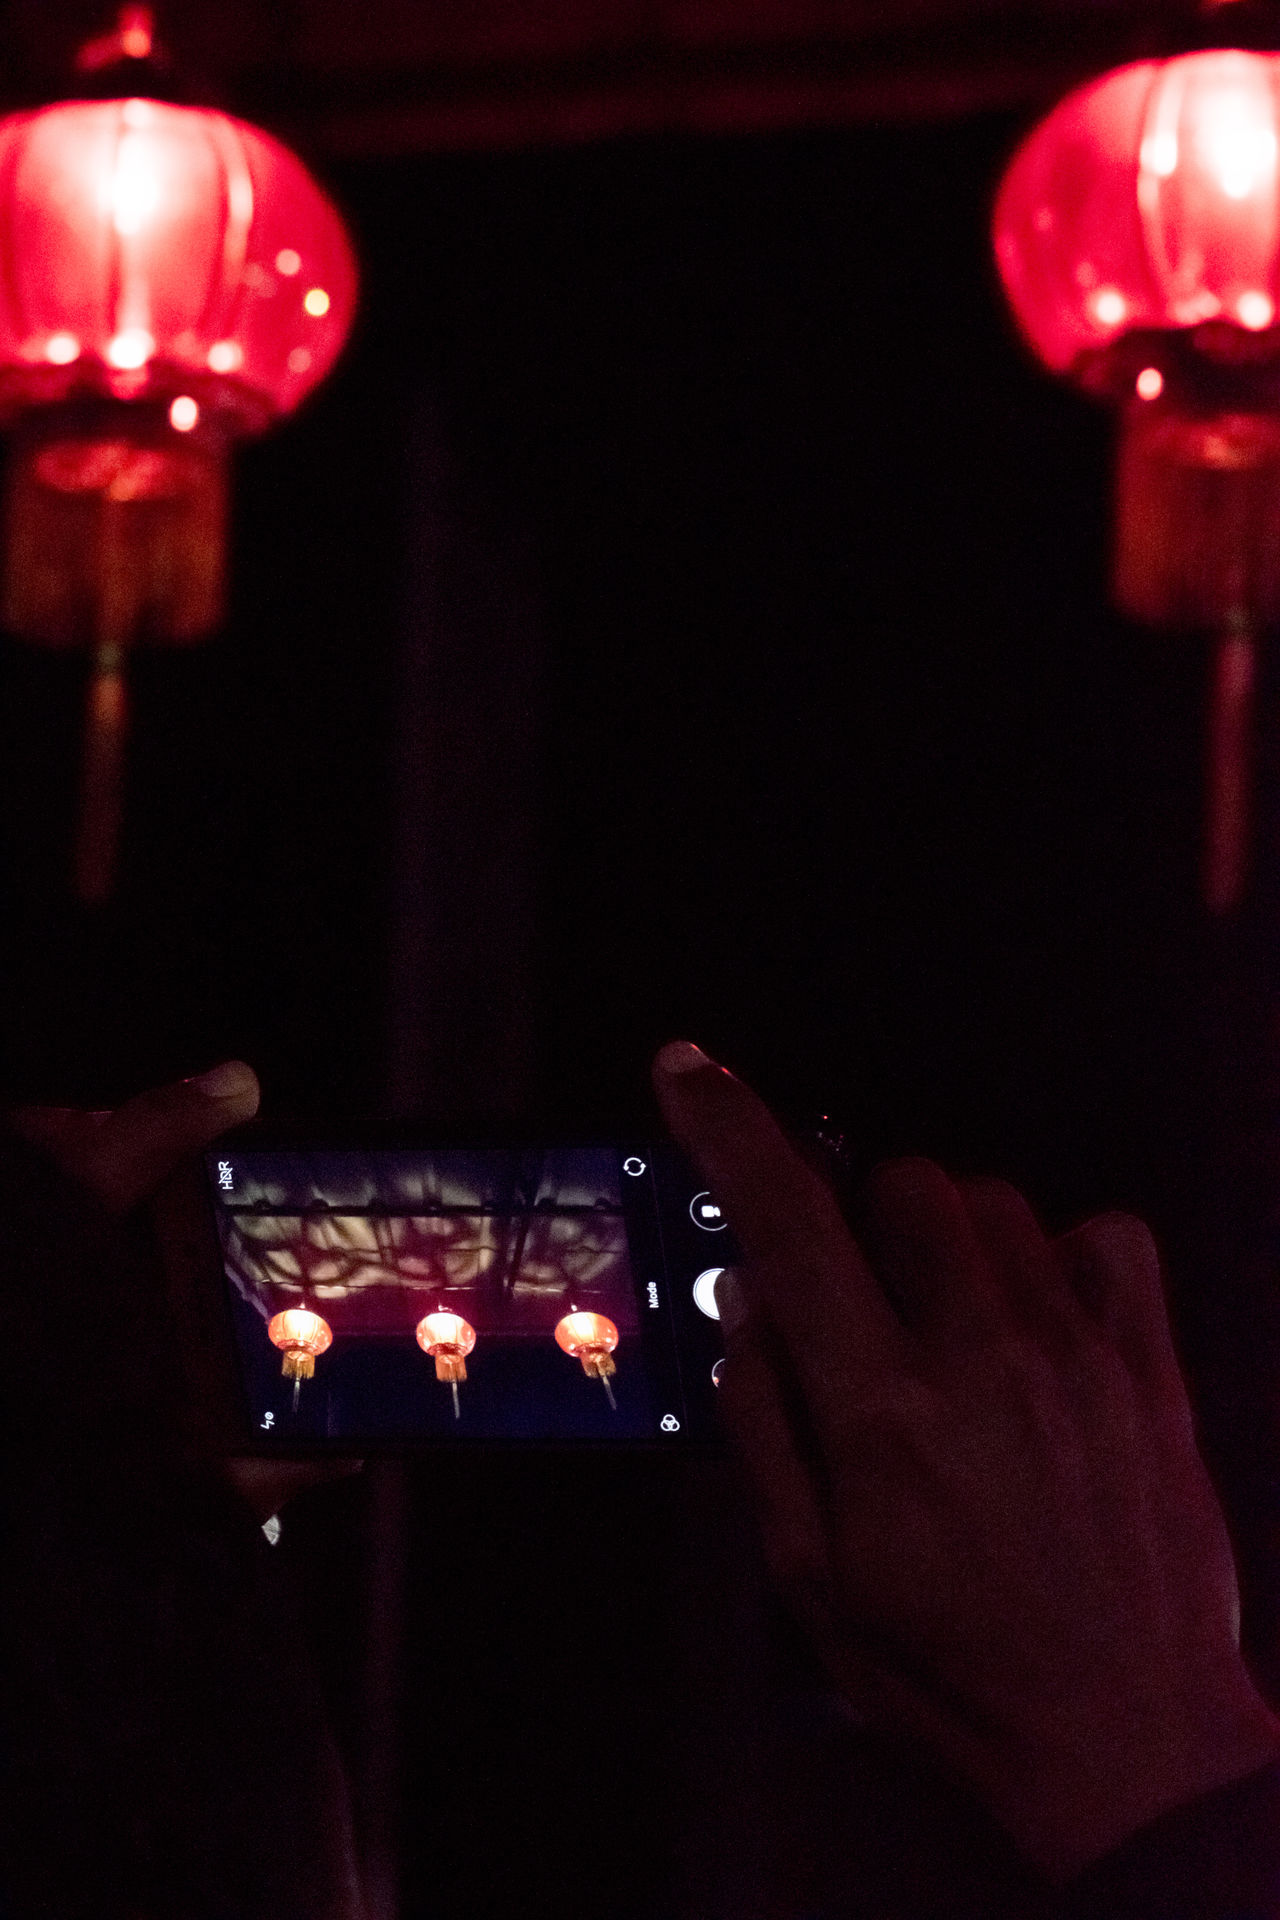 Night Red Close-up Streetphotography Nightlife Nightshot Night Lights Nightphotography Check This Out Chinese Lantern Festival Chinese Lantern Cultures Lantern Hanging Cityscape Night Photography Take Photos